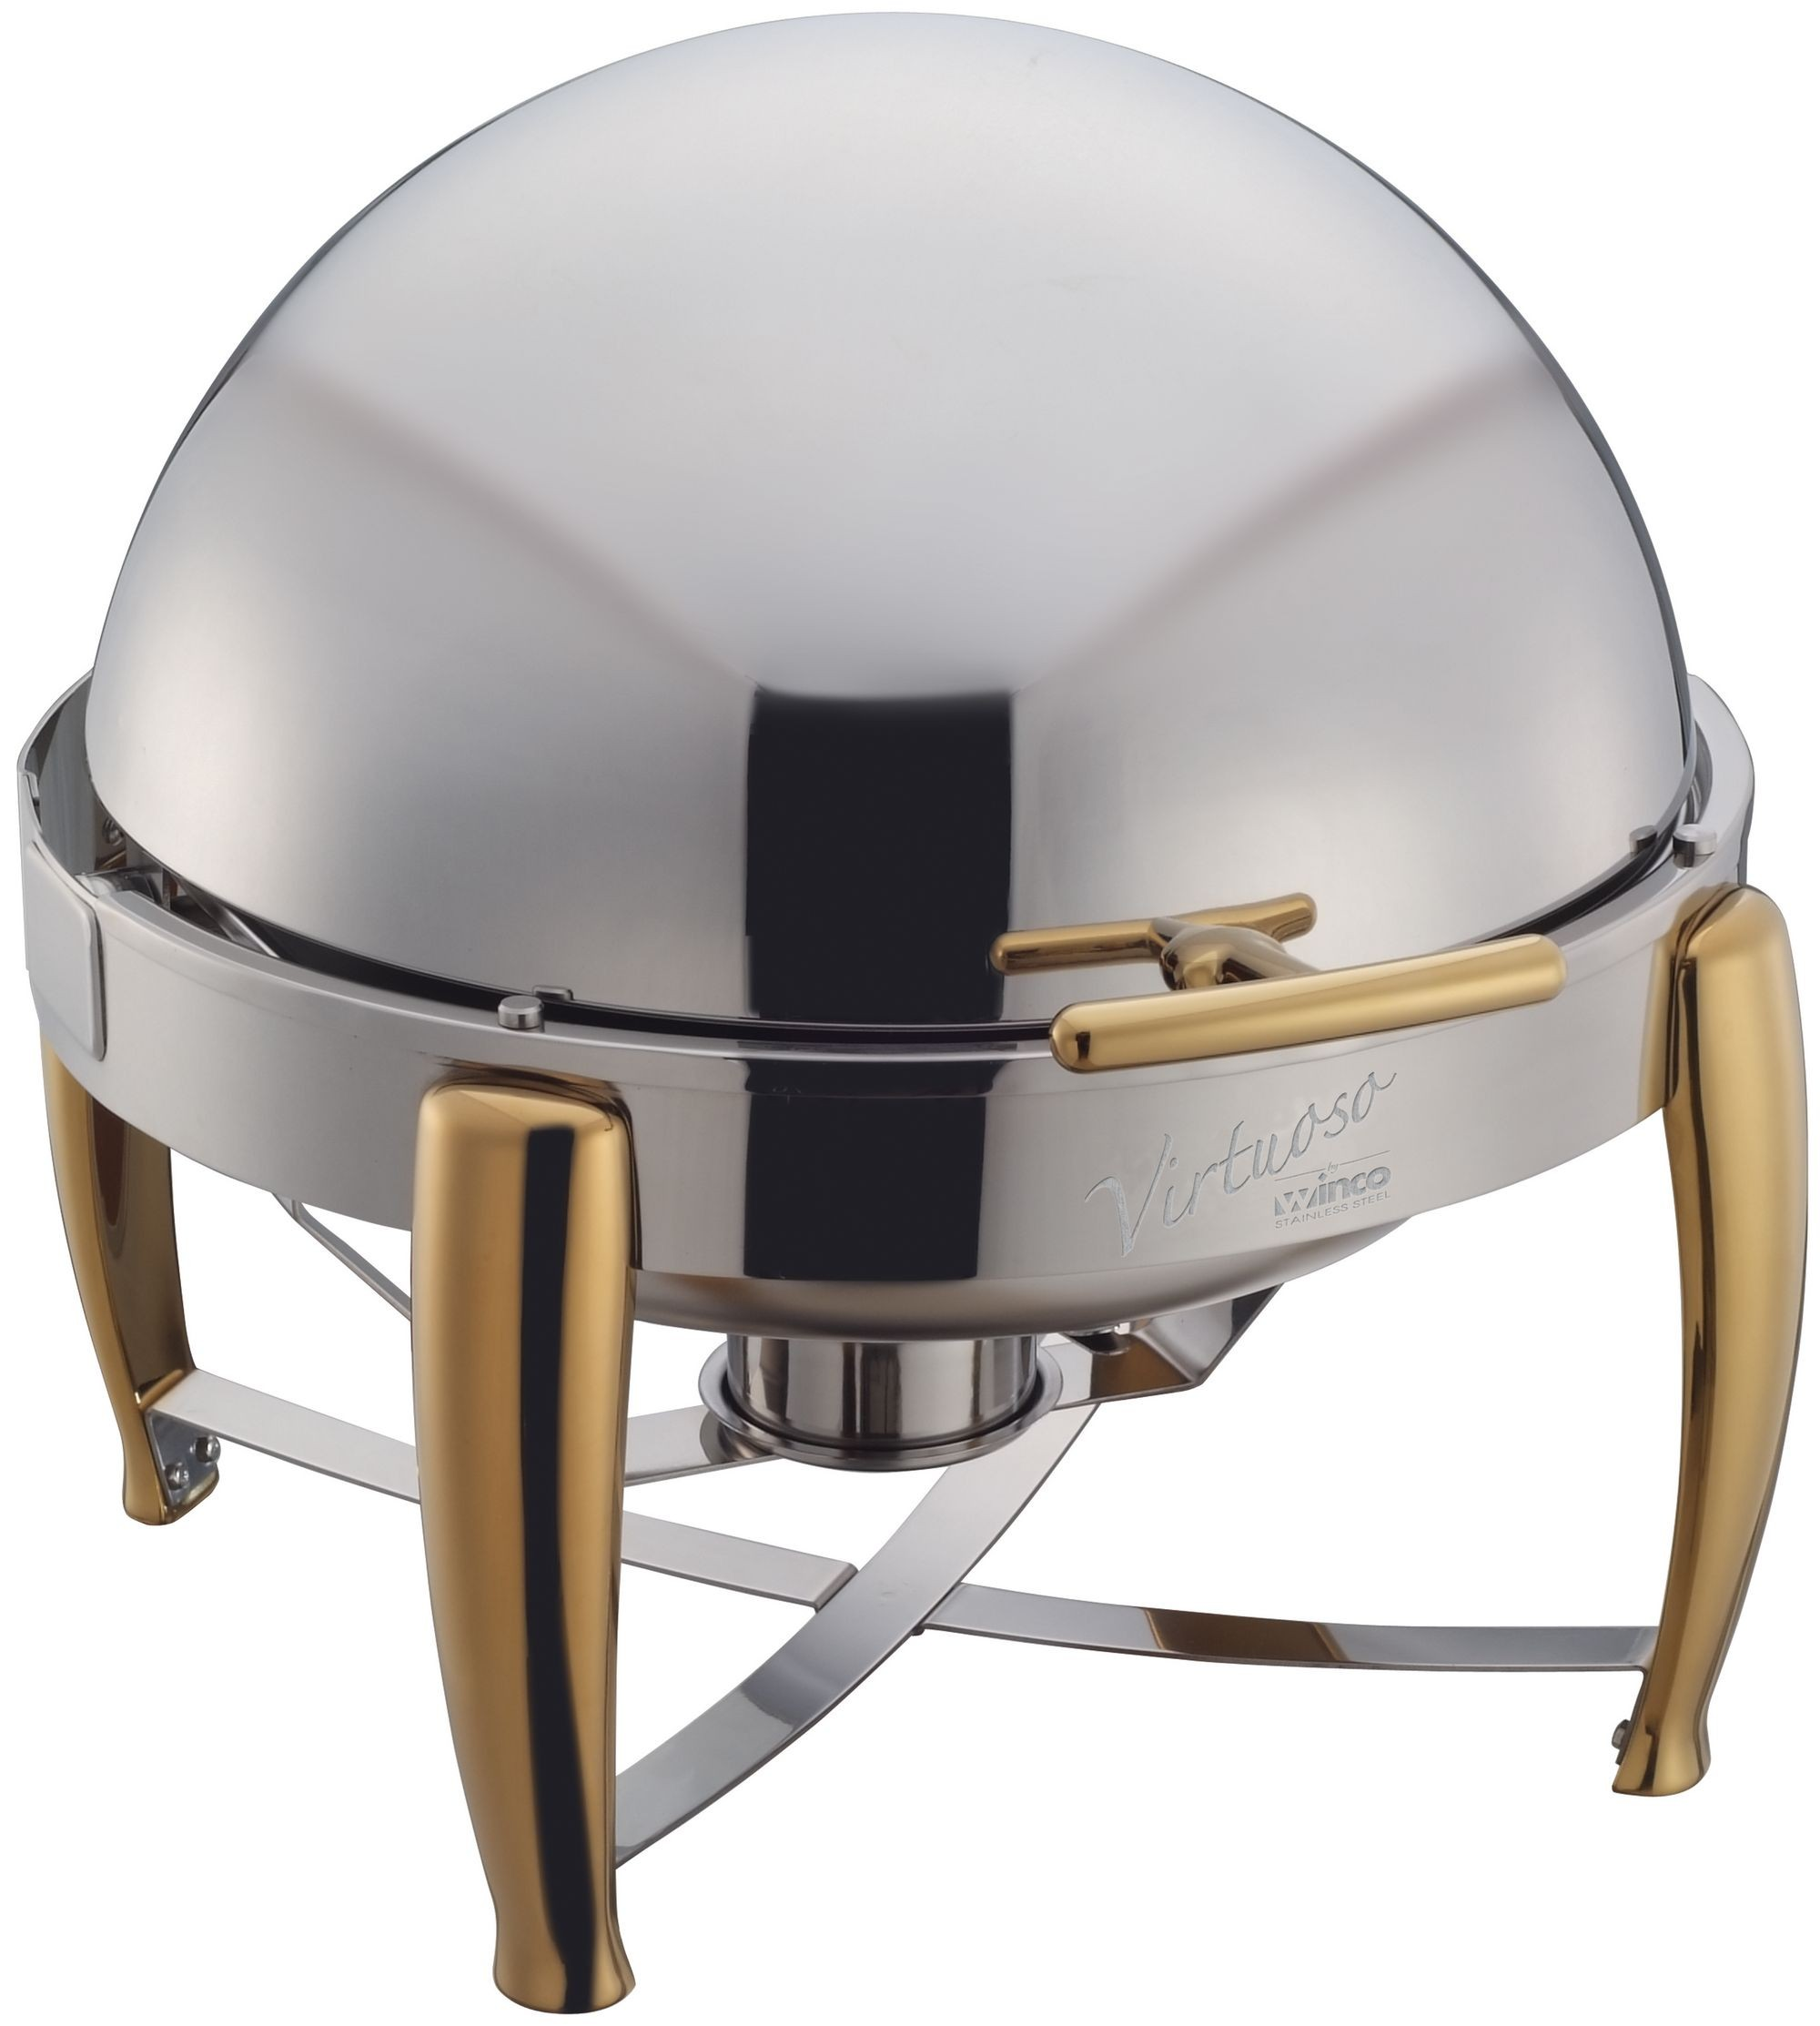 Virtuoso Round Chafer with Gold Accent 6 Qt